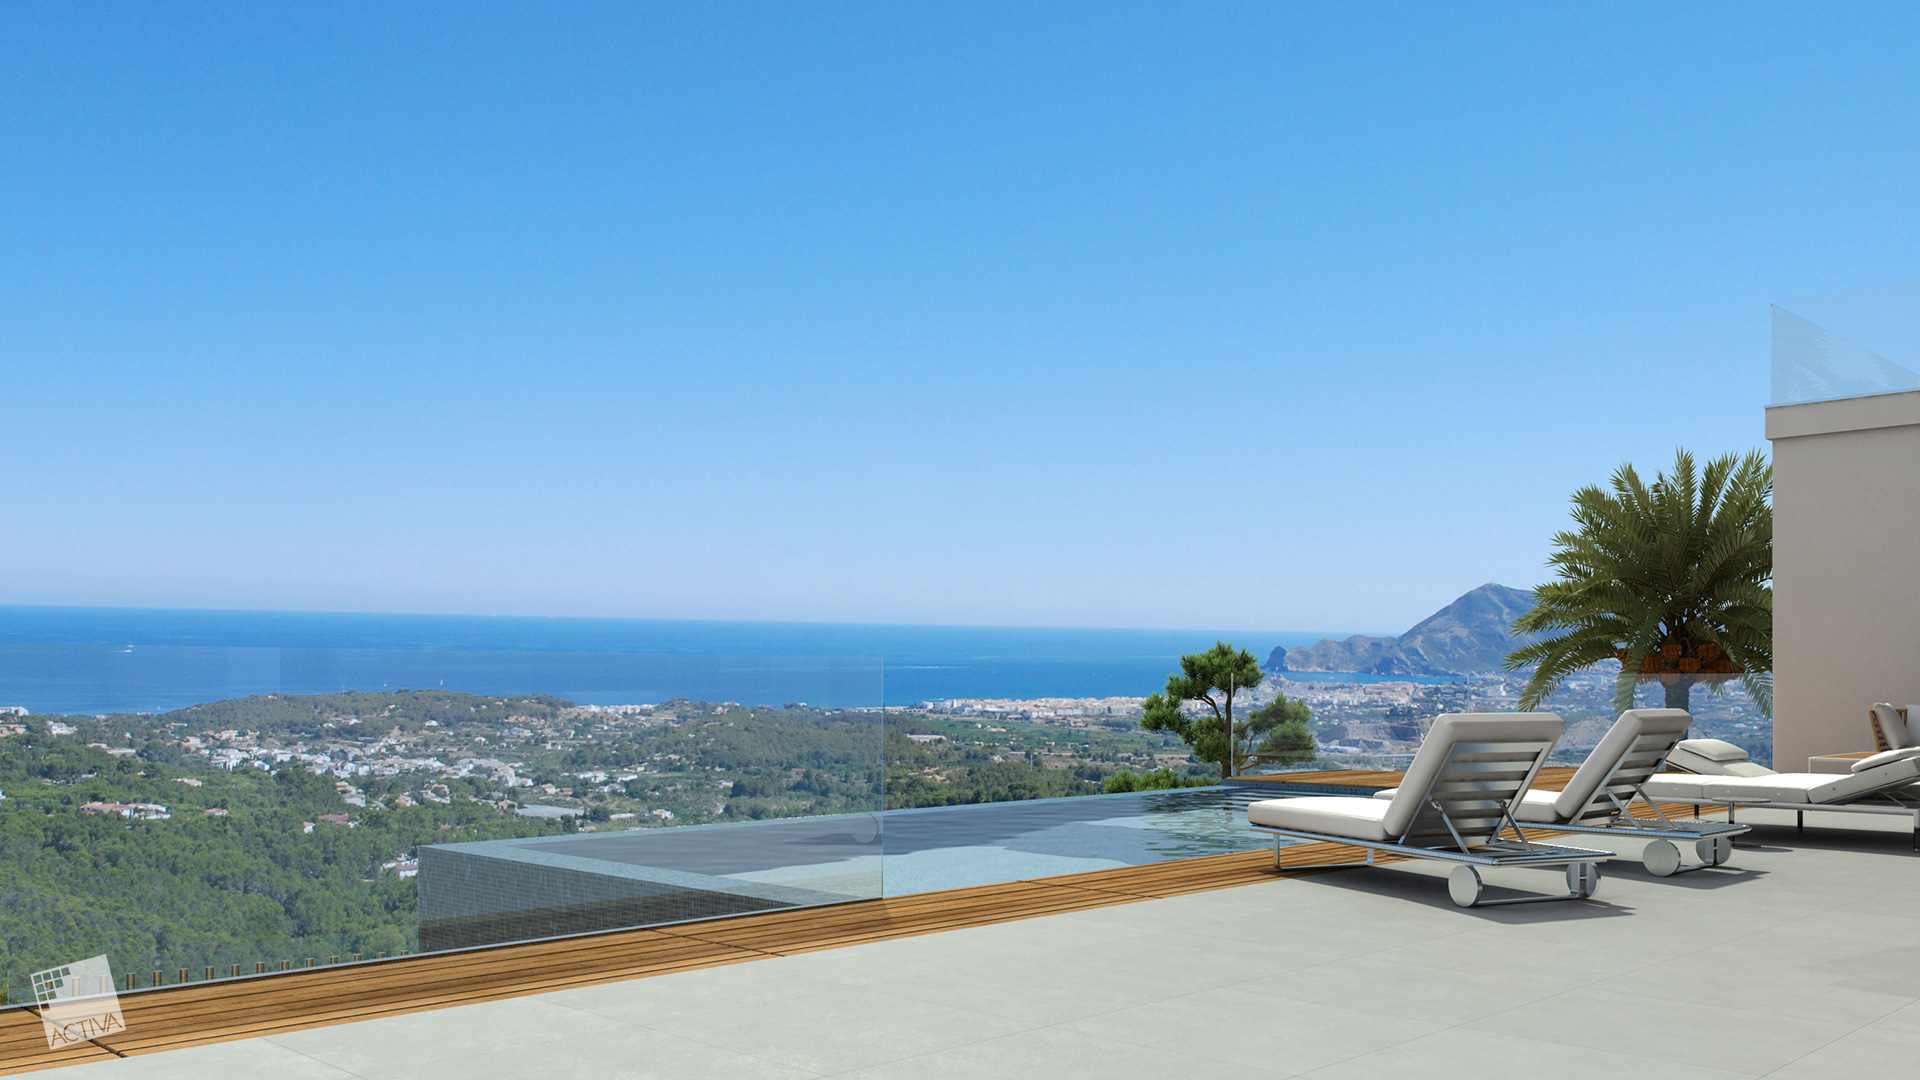 Image Exquisite Luxury Hilltop Villa in Altea 4